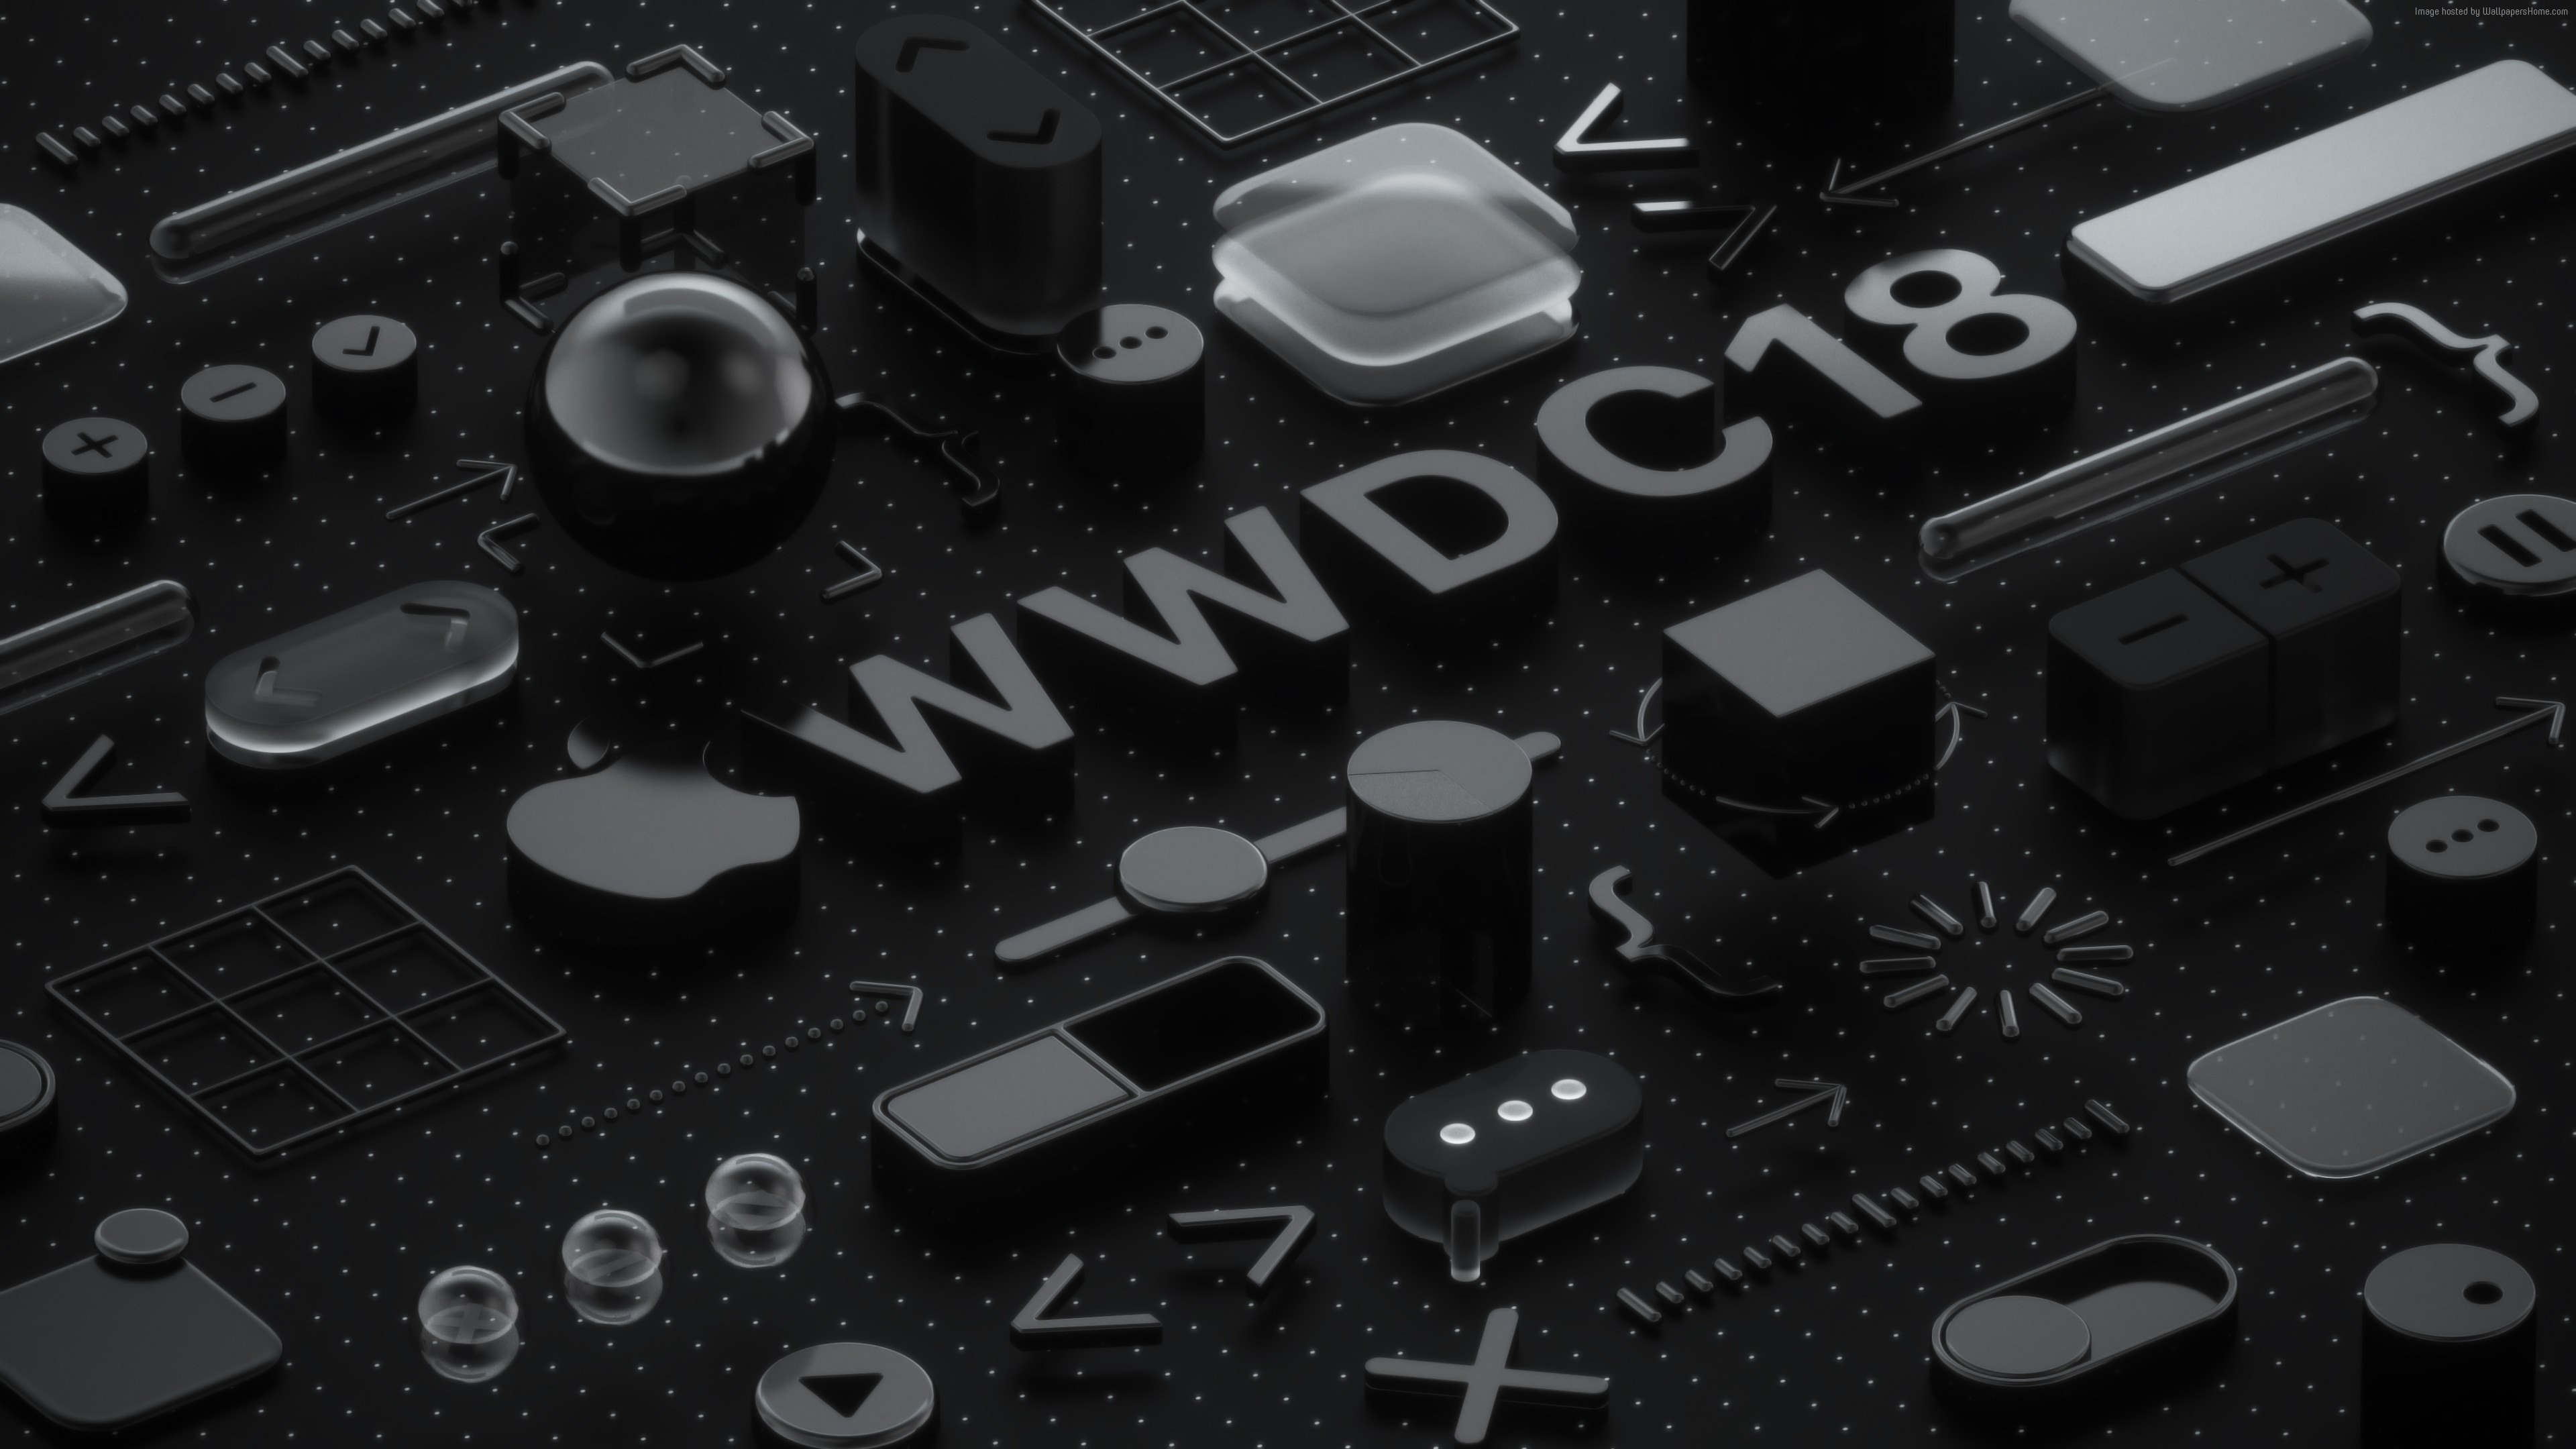 Wallpaper WWDC 2018, Black, 3D, 4K, Hi-Tech